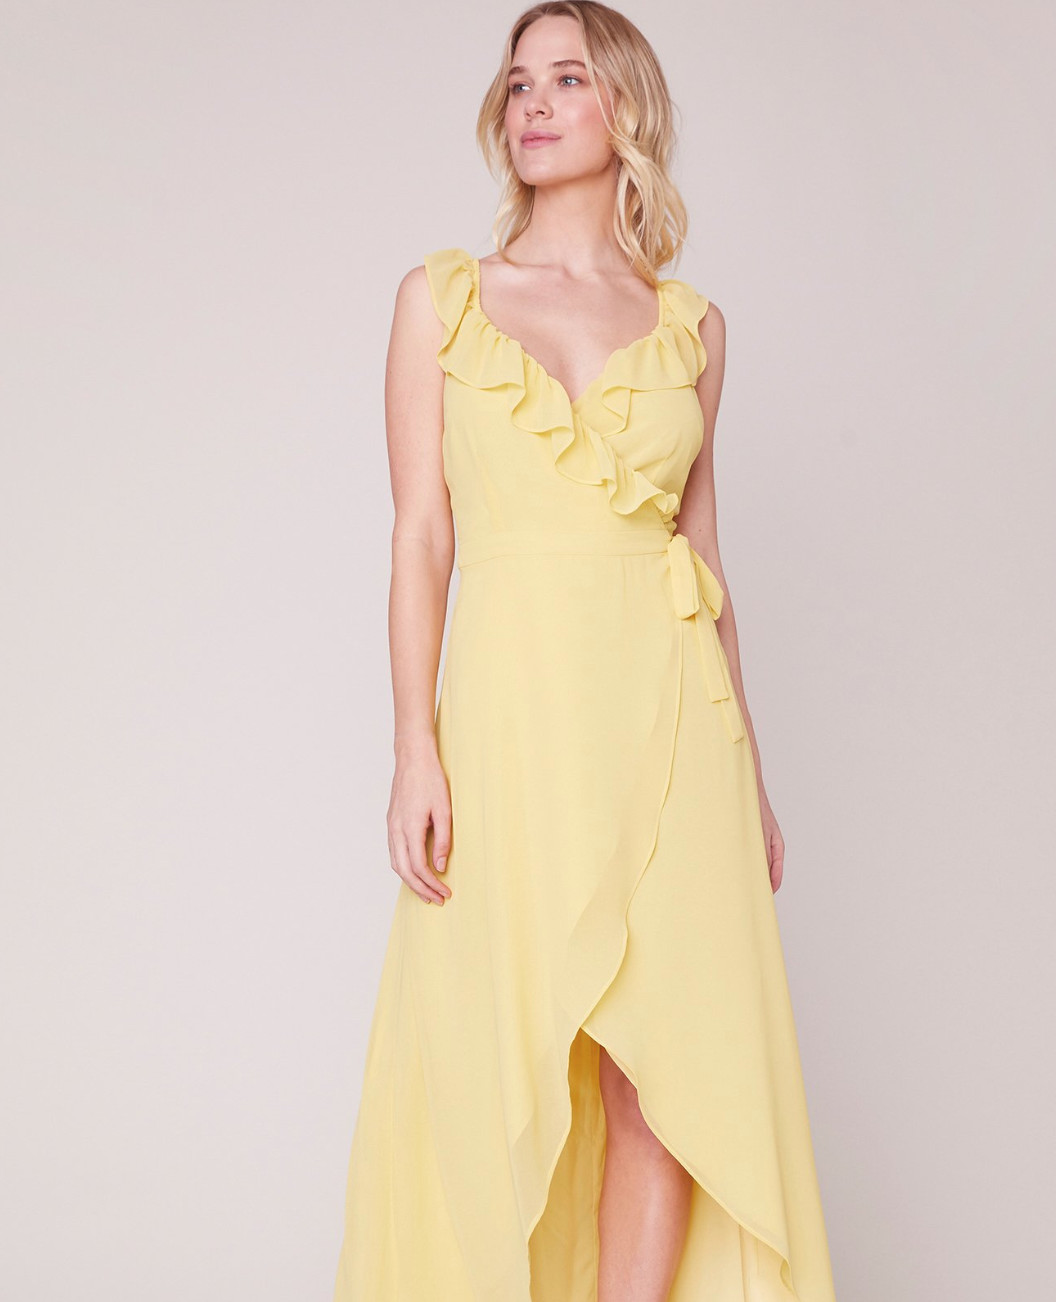 7a6fdfaf05c65 The Trendiest Prom Dresses Of 2019 - Fashion Guide - Livingly